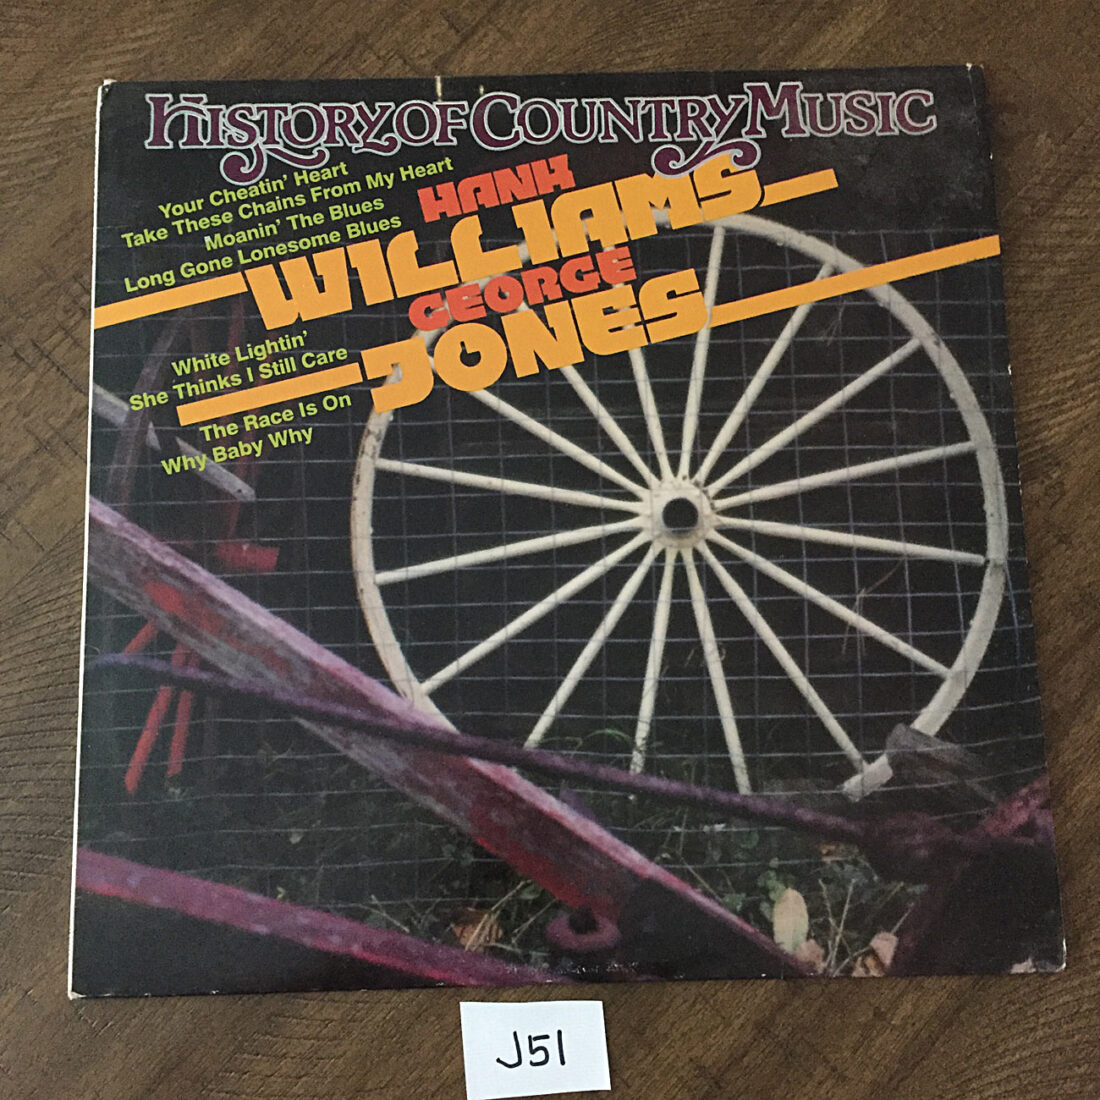 The History of Country Music: Hank Williams Jr. and George Jones (1981) [J51]